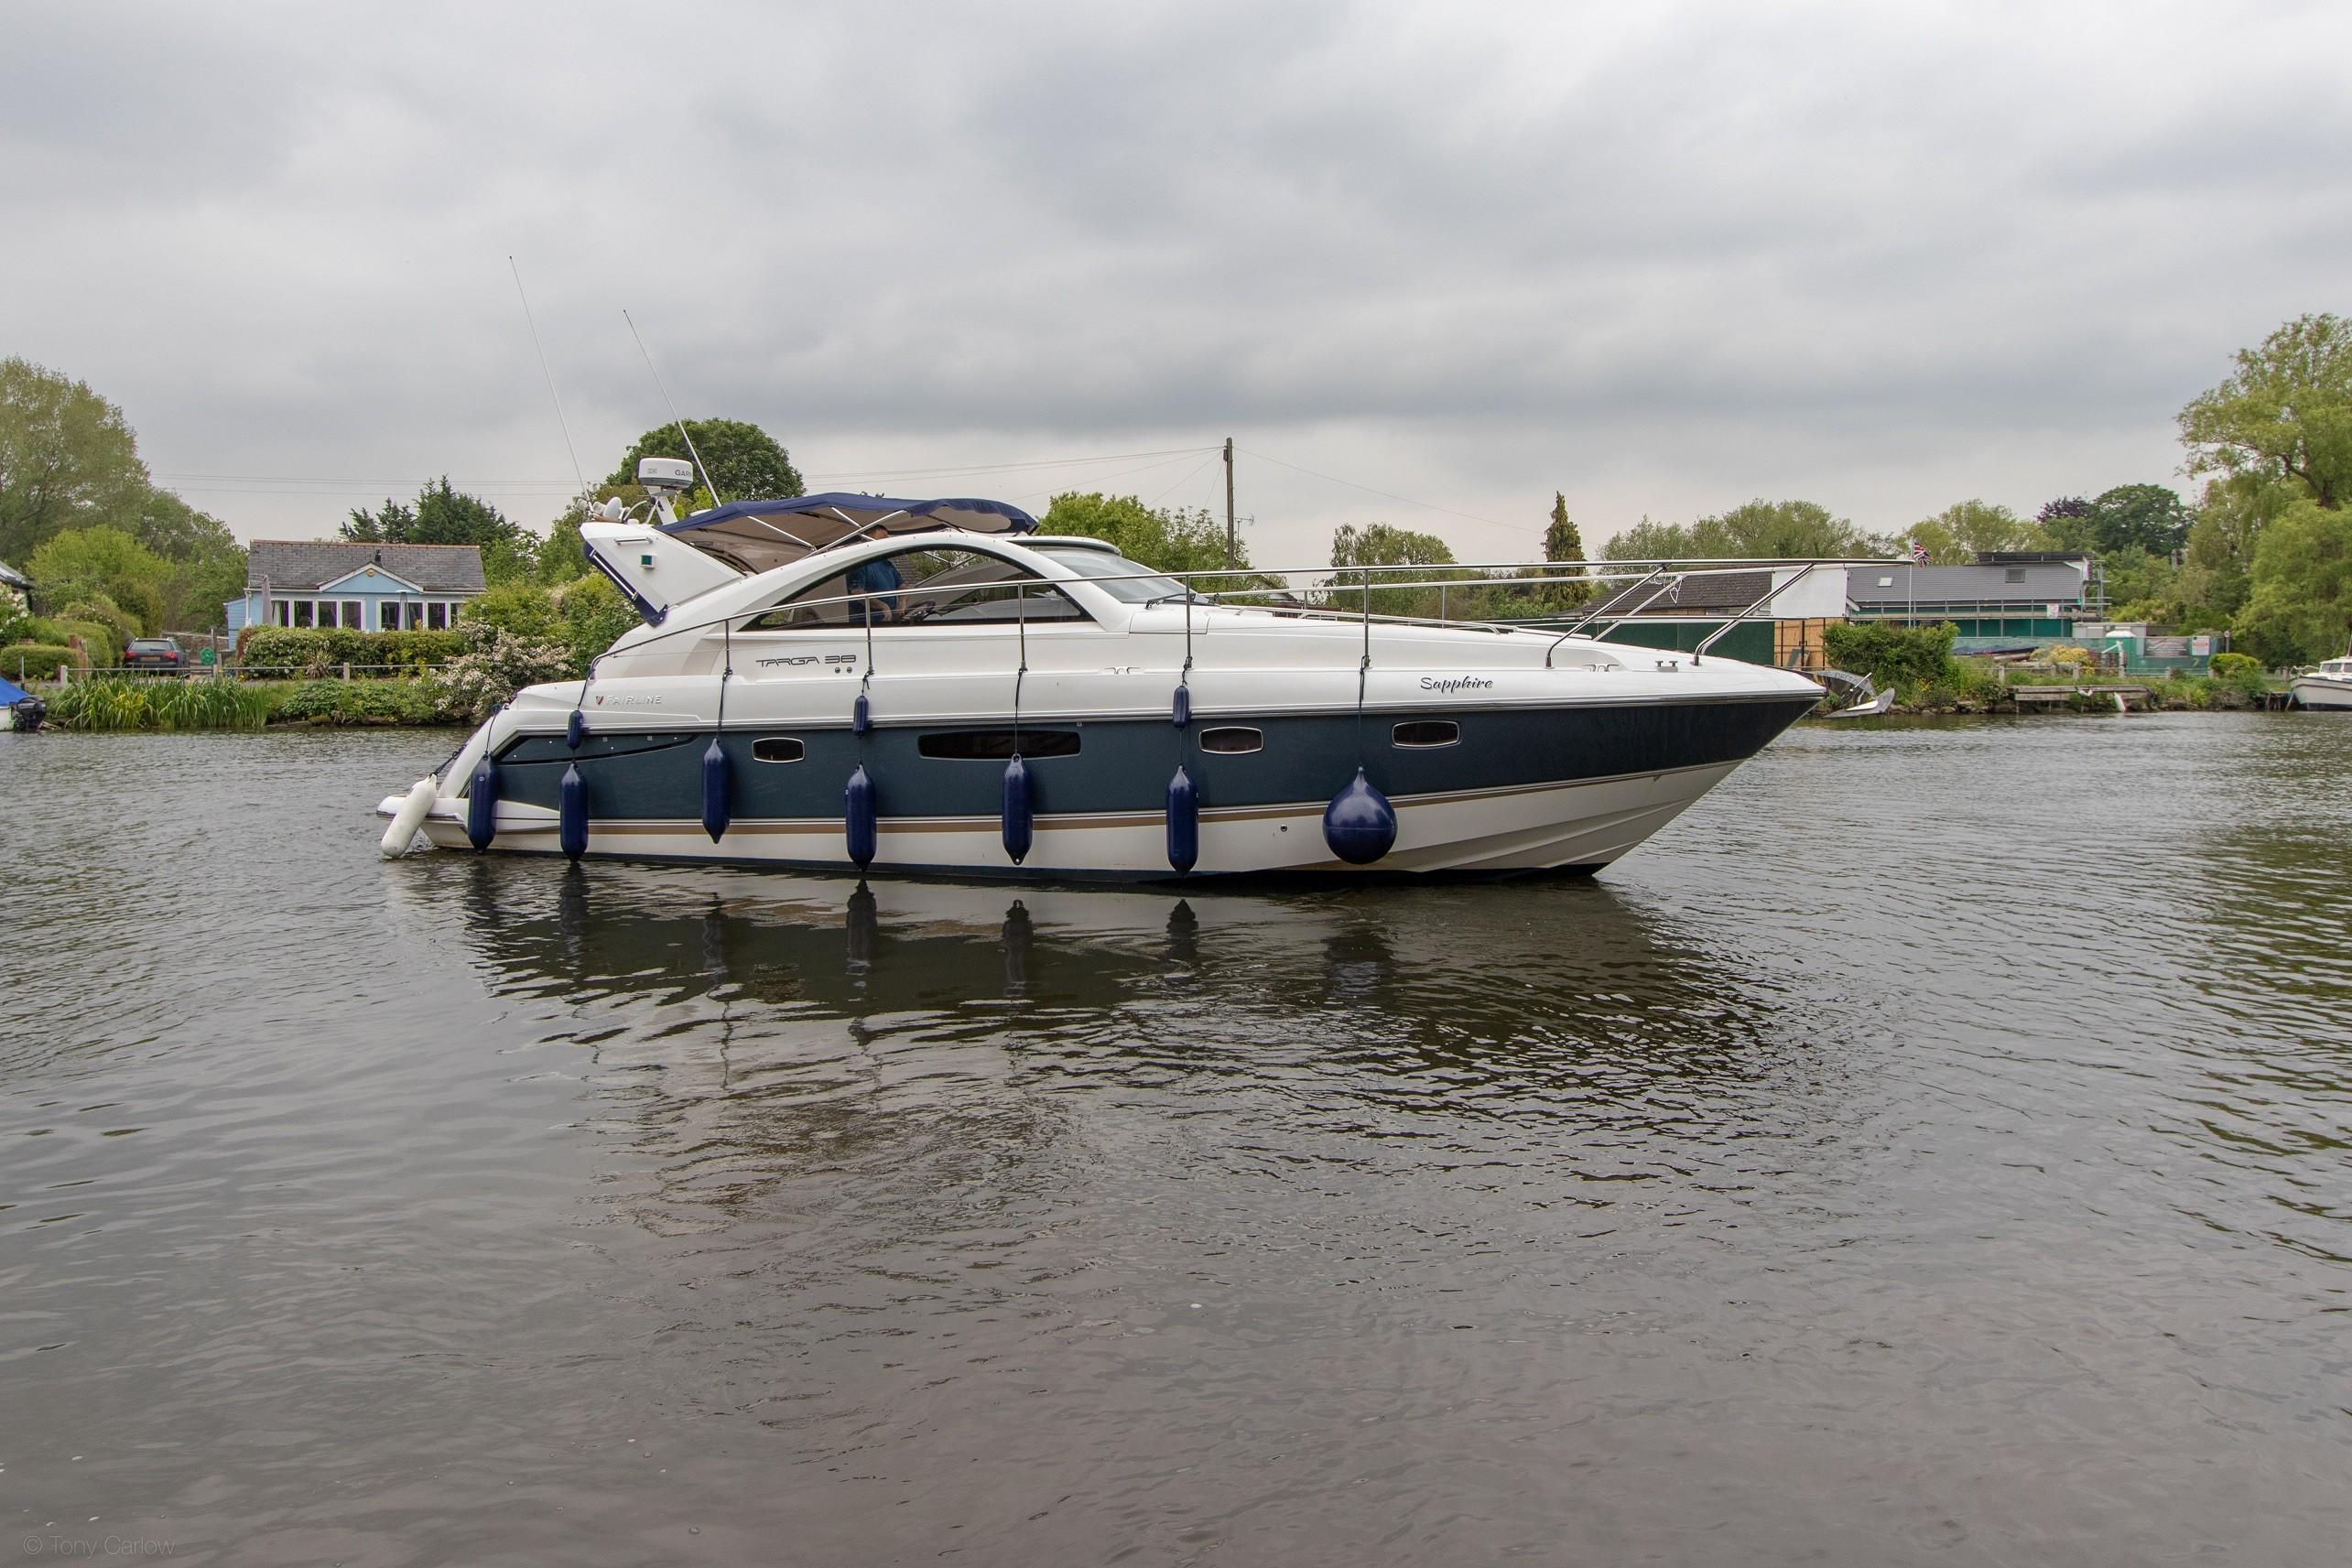 Boats for Sale Chertsey   Bates Wharf